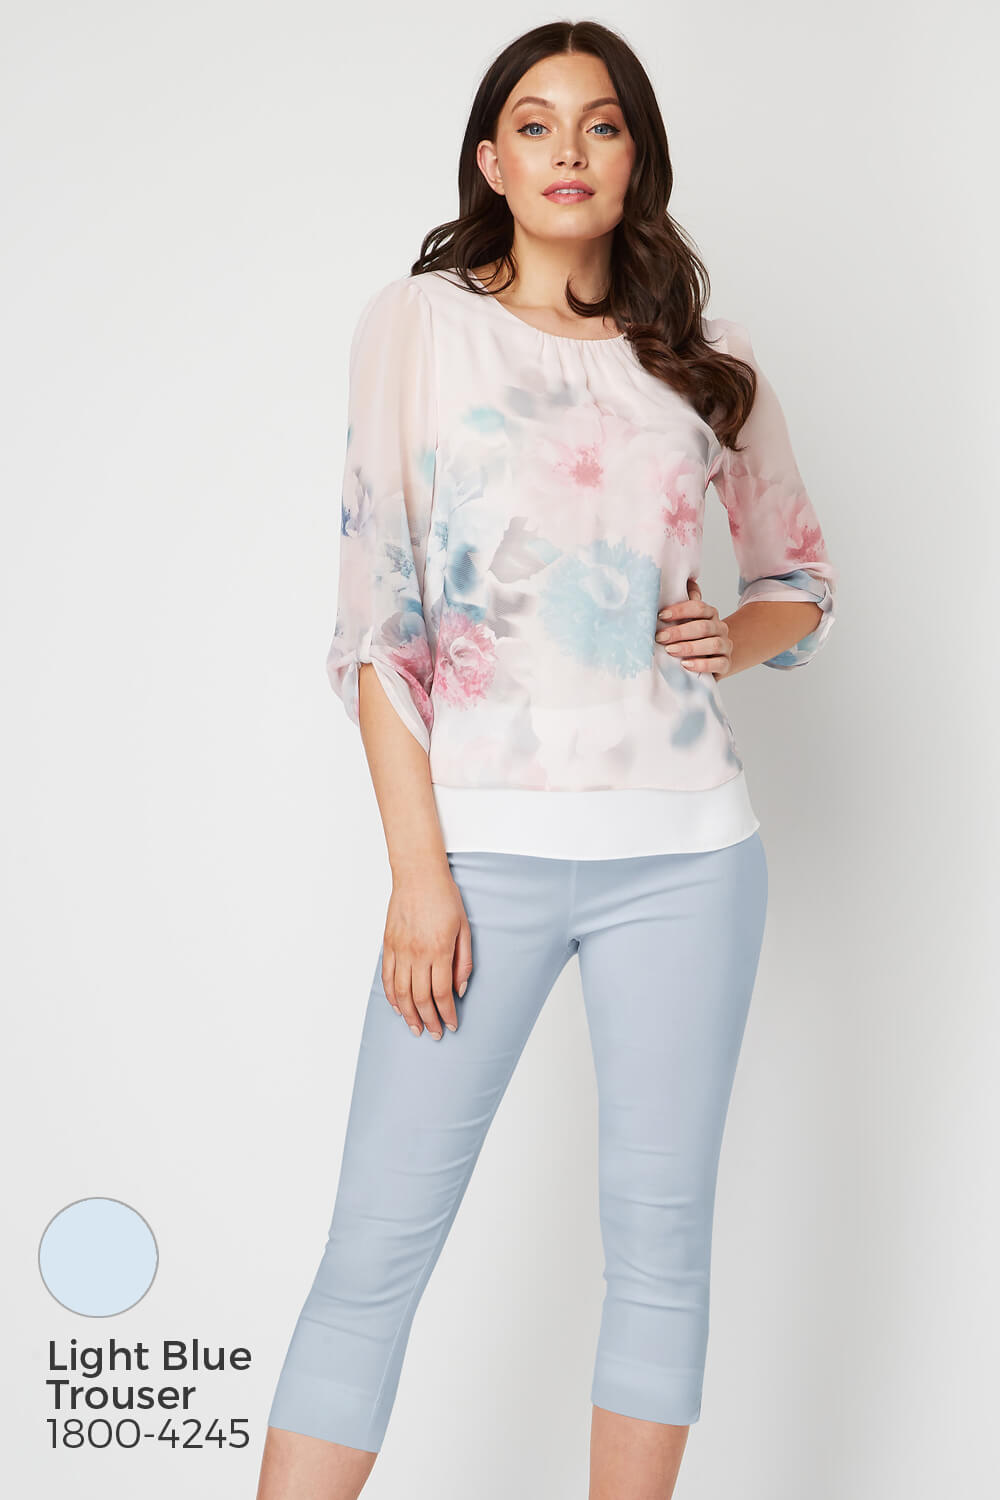 Roman-Originals-Womens-3-4-Length-Sleeve-Floral-Overlay-Top thumbnail 18